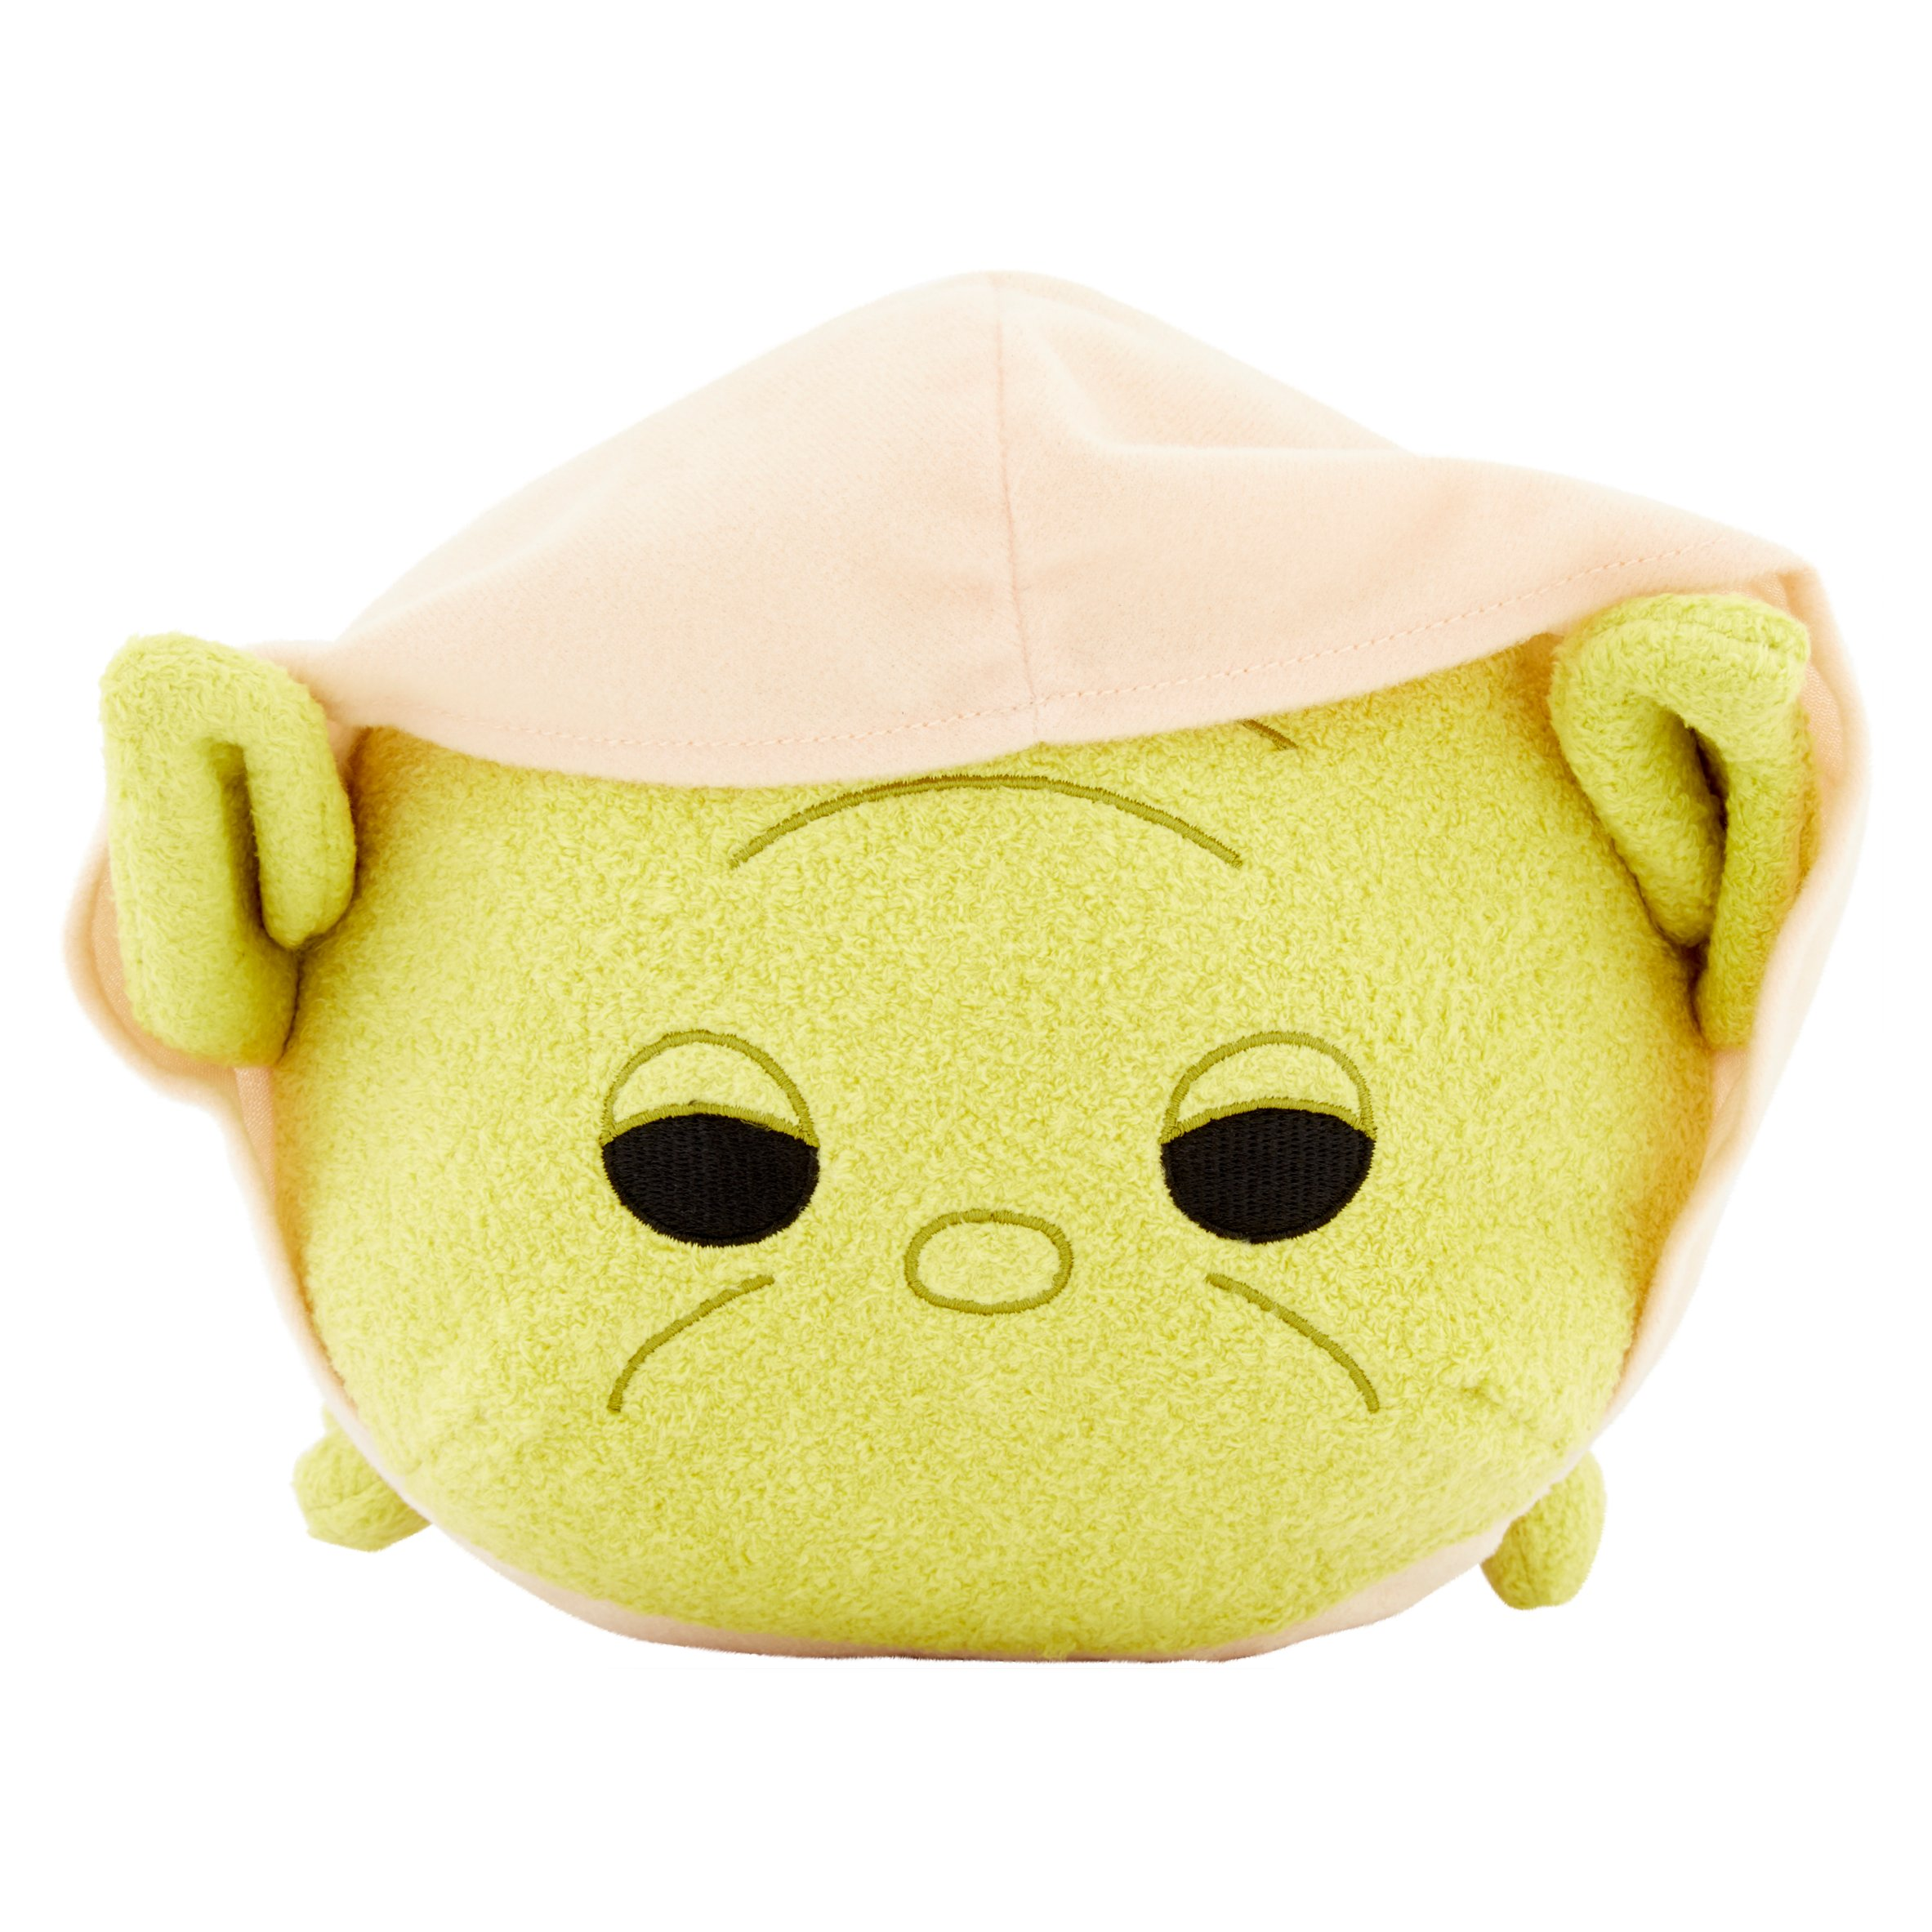 "Disney Tsum Tsum Star Wars Yoda 12"" Plush"